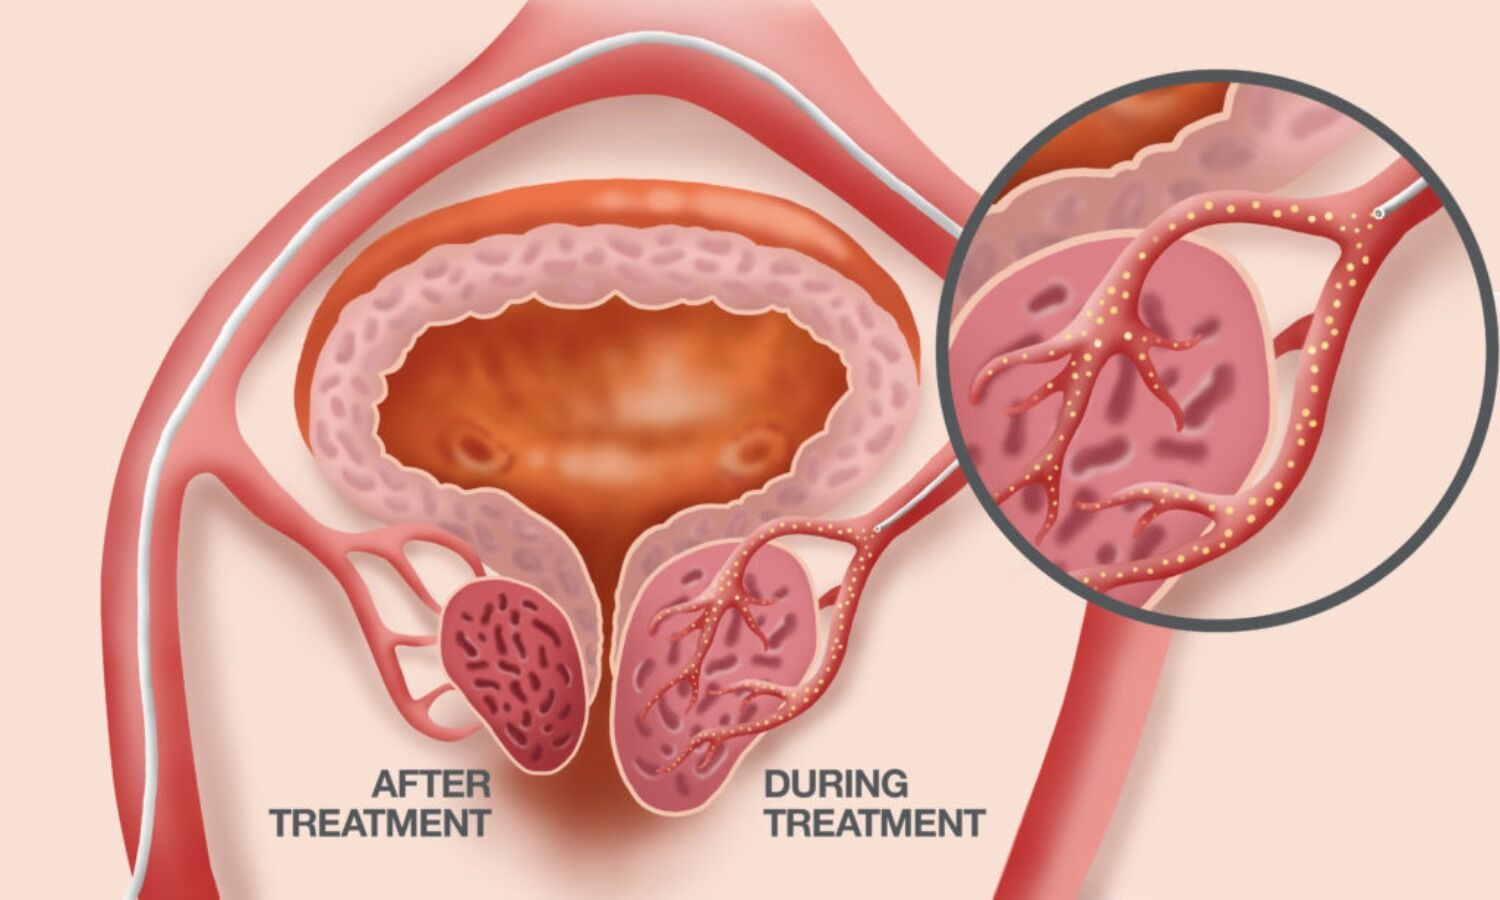 Prostatic Artery Embolization beneficial for treating LUTS in